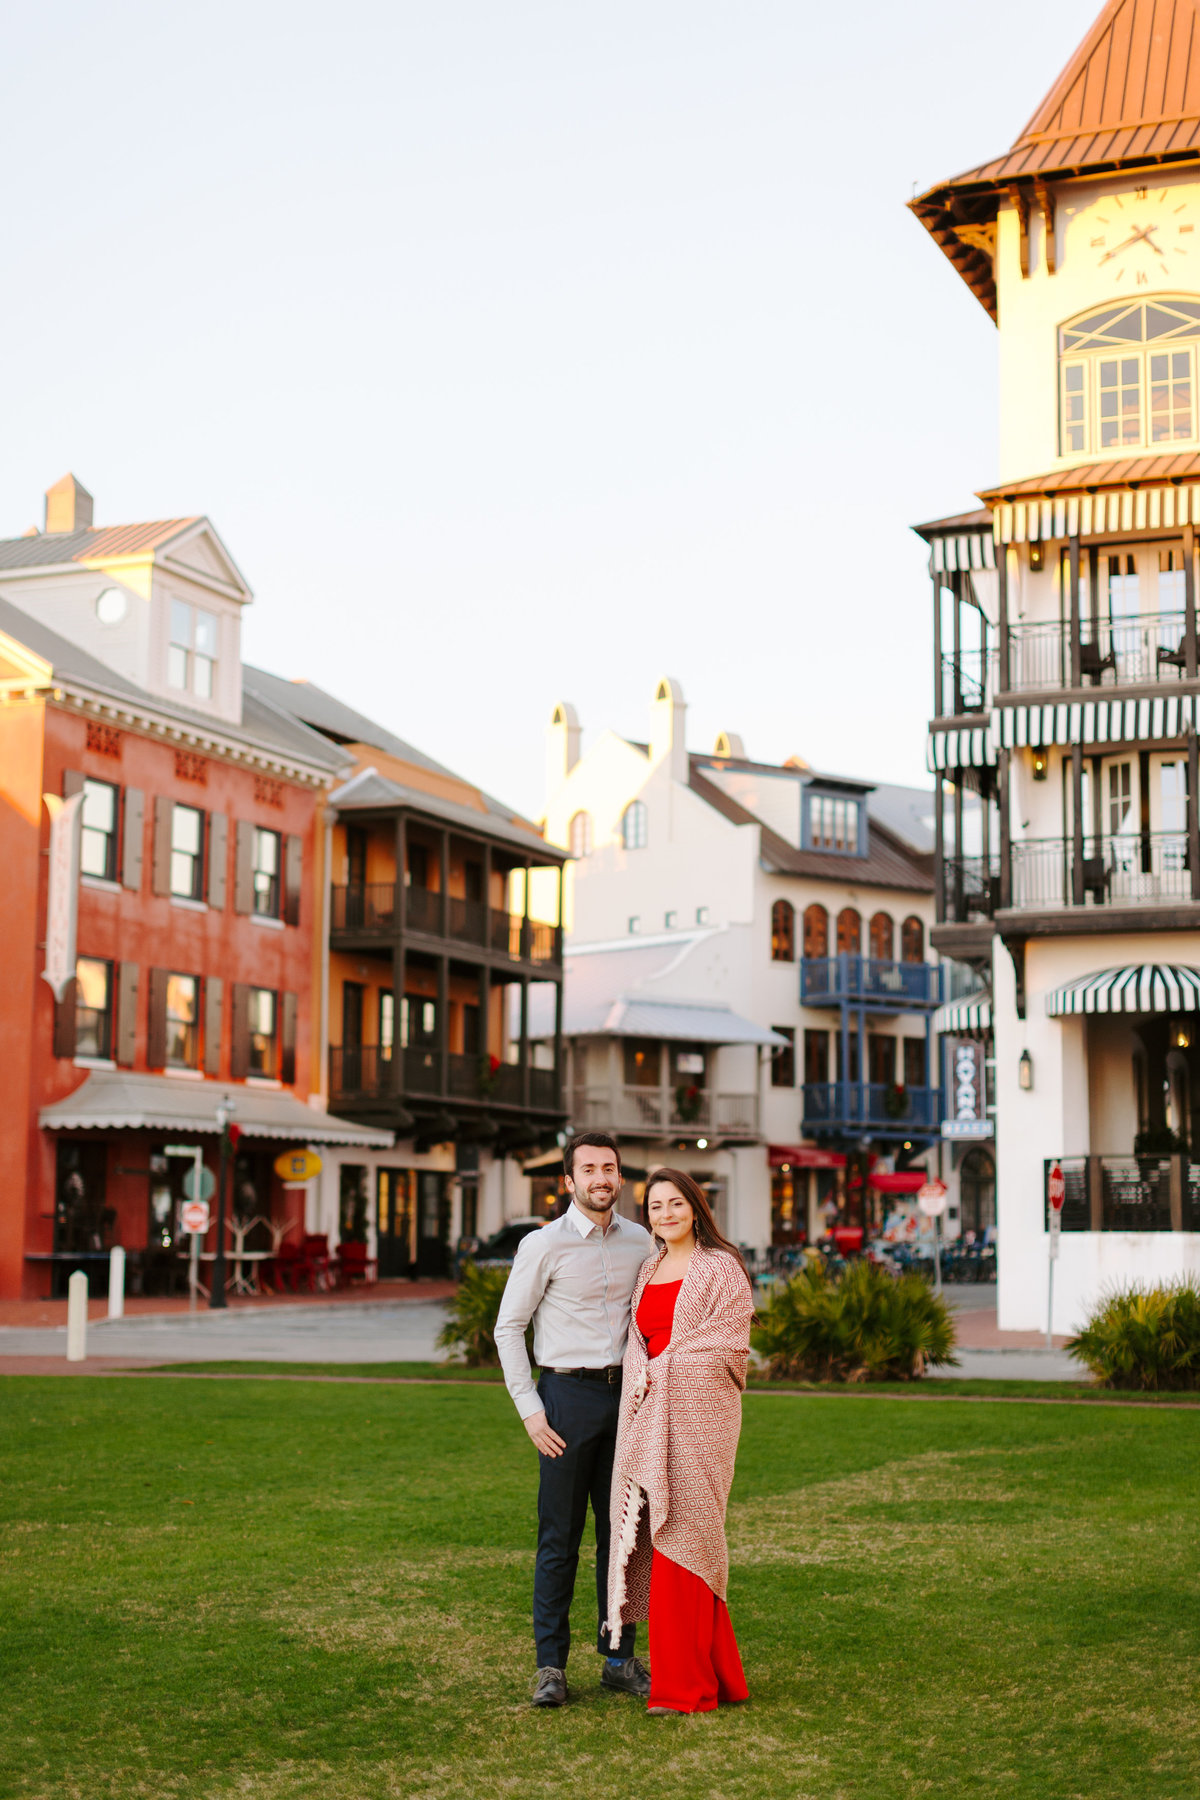 karley-and-shiloh-rosemary-beach-engagement-session-98